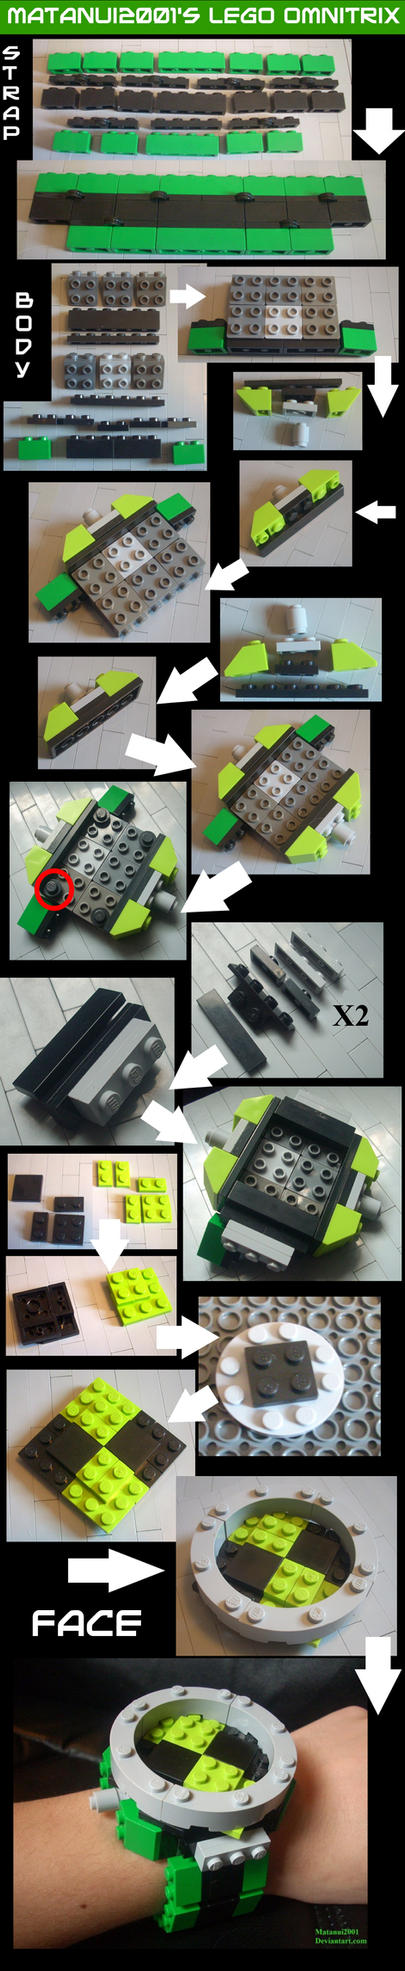 Lego Omnitrix Instructions by matanui2001